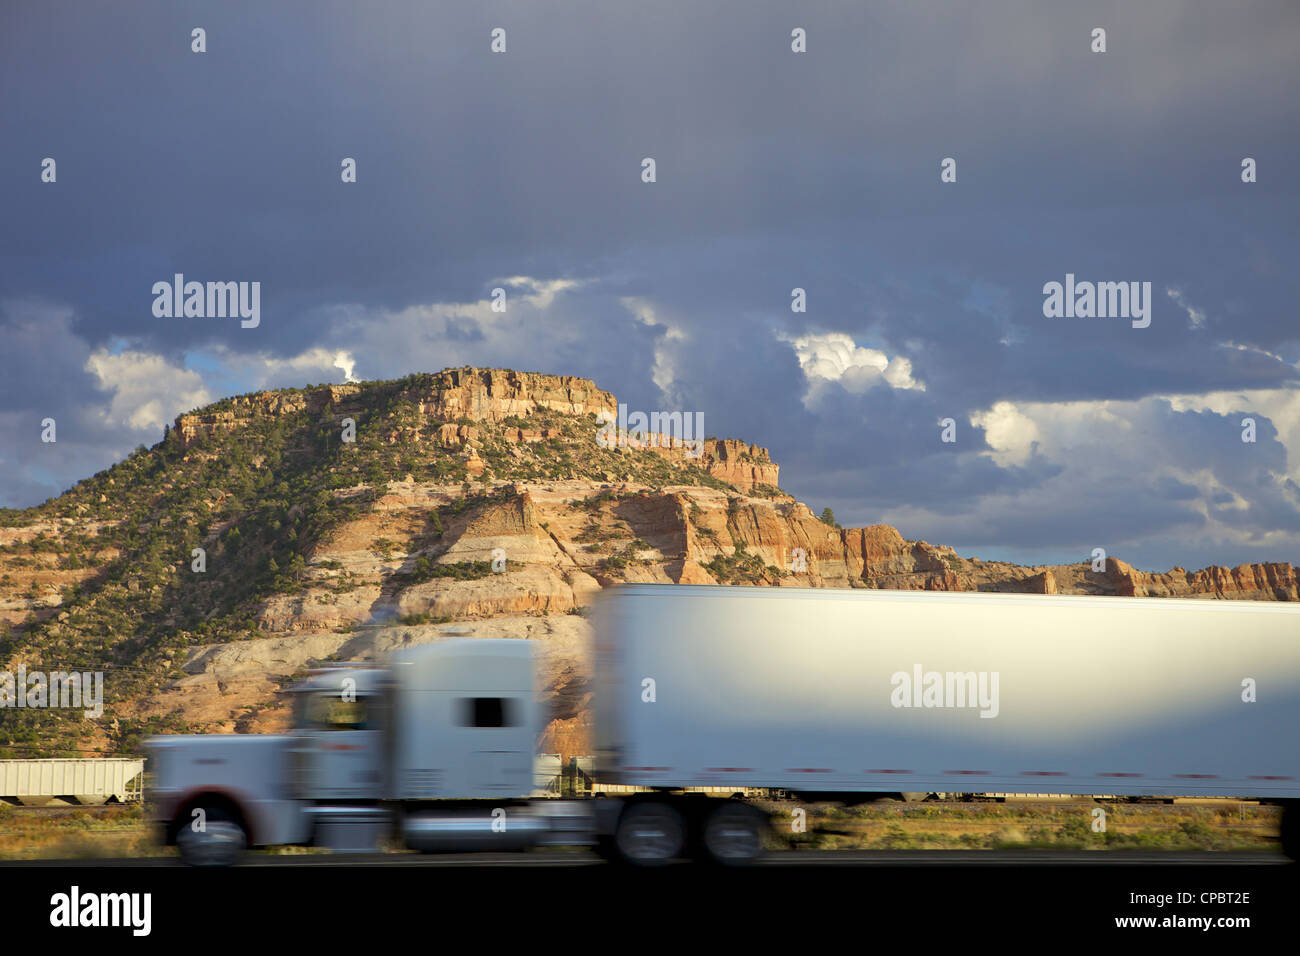 White truck passing rock formation, USA - Stock Image